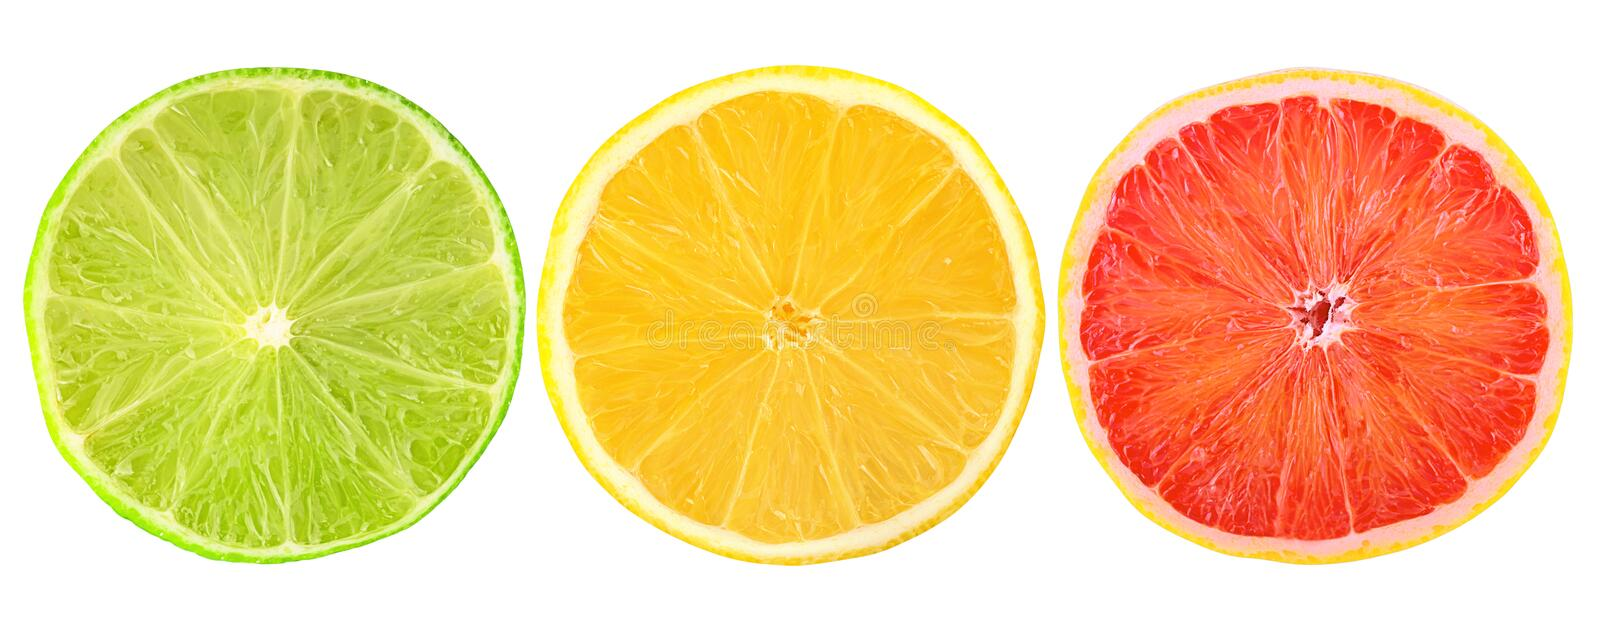 Fresh citrus fruits cut in half isolated on white royalty free stock photography